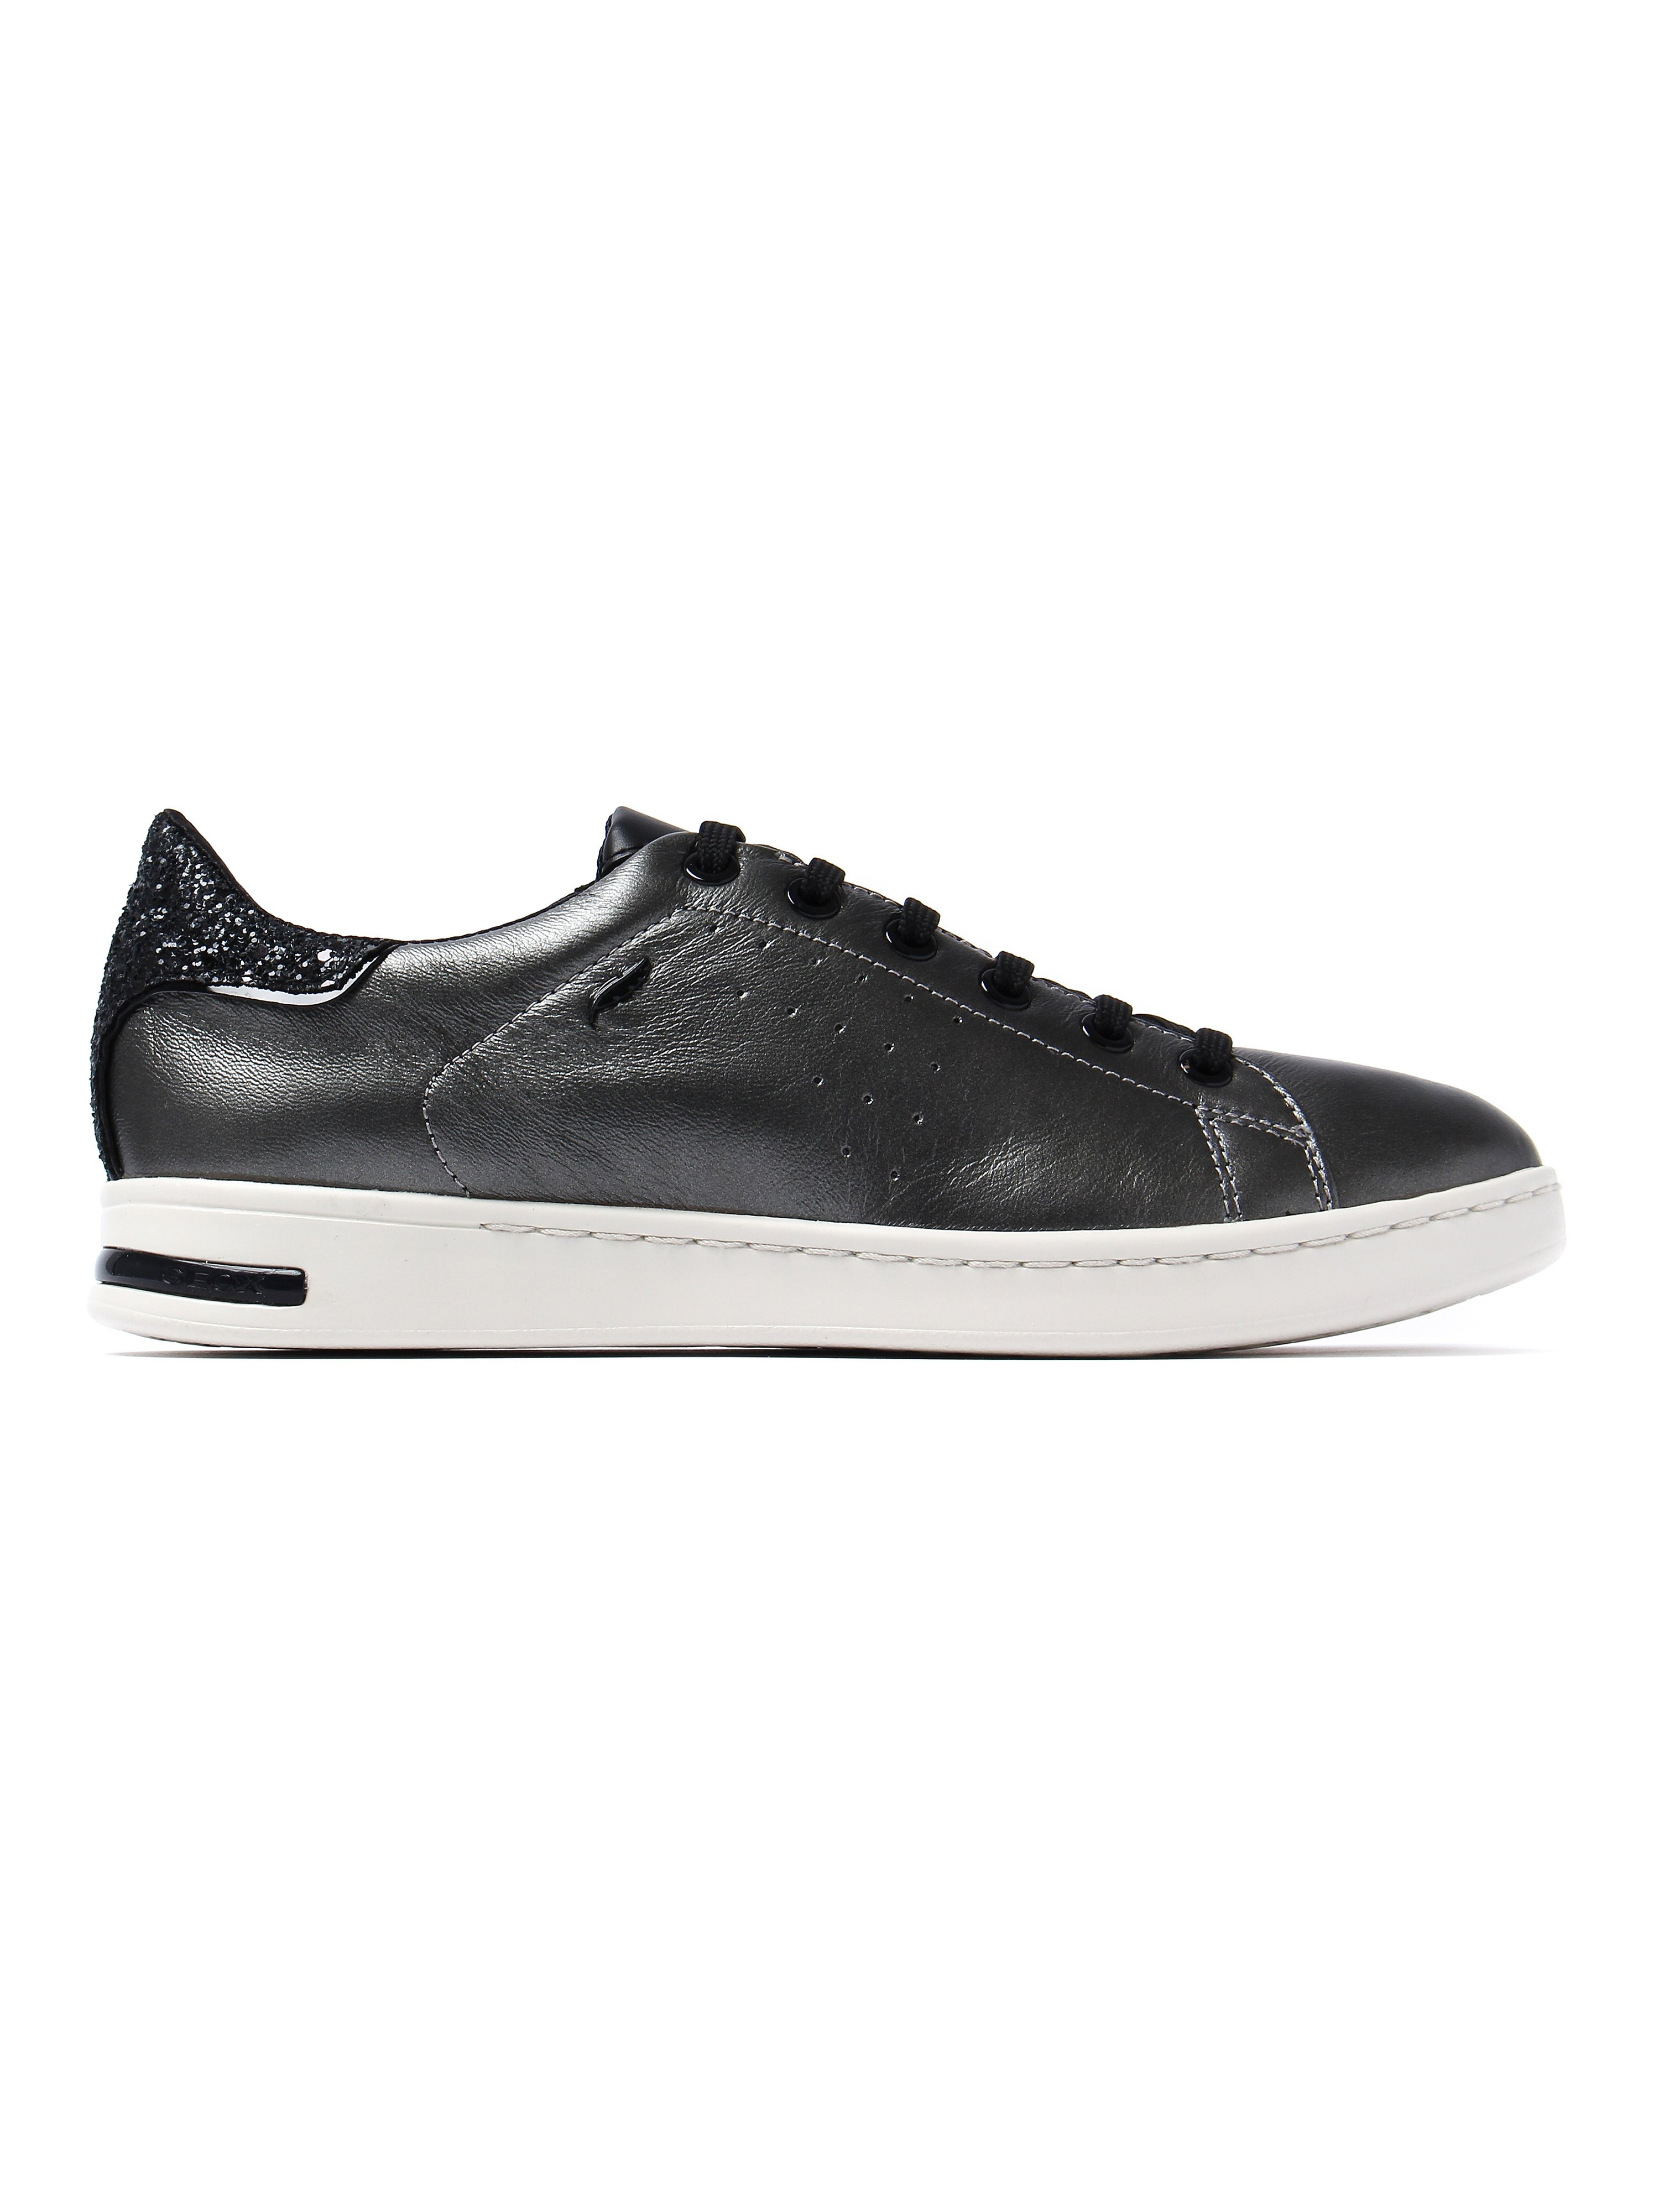 Geox Women's Jaysen Low Top Trainers - Dark Grey Leather